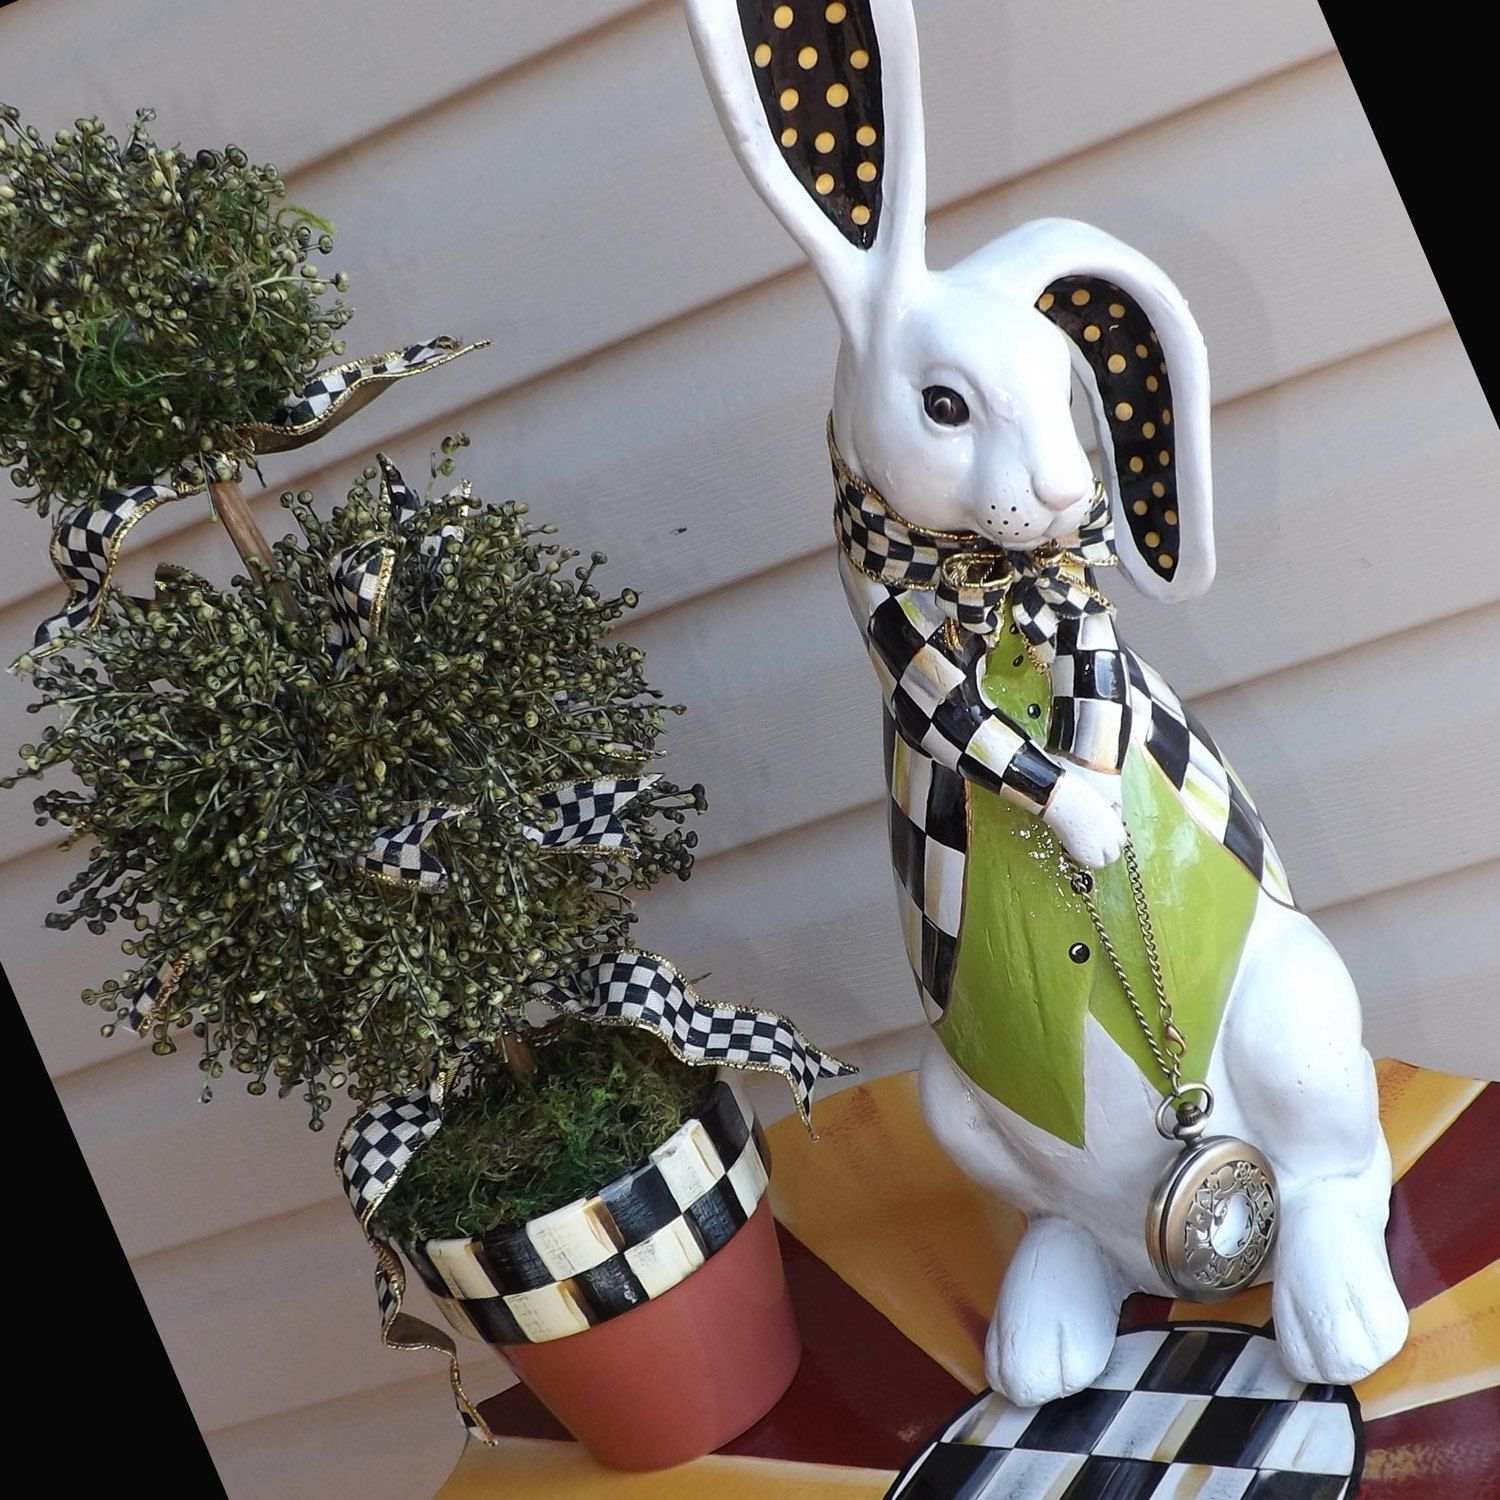 White Rabbit Figurine Hand Painted Whimsical Black And